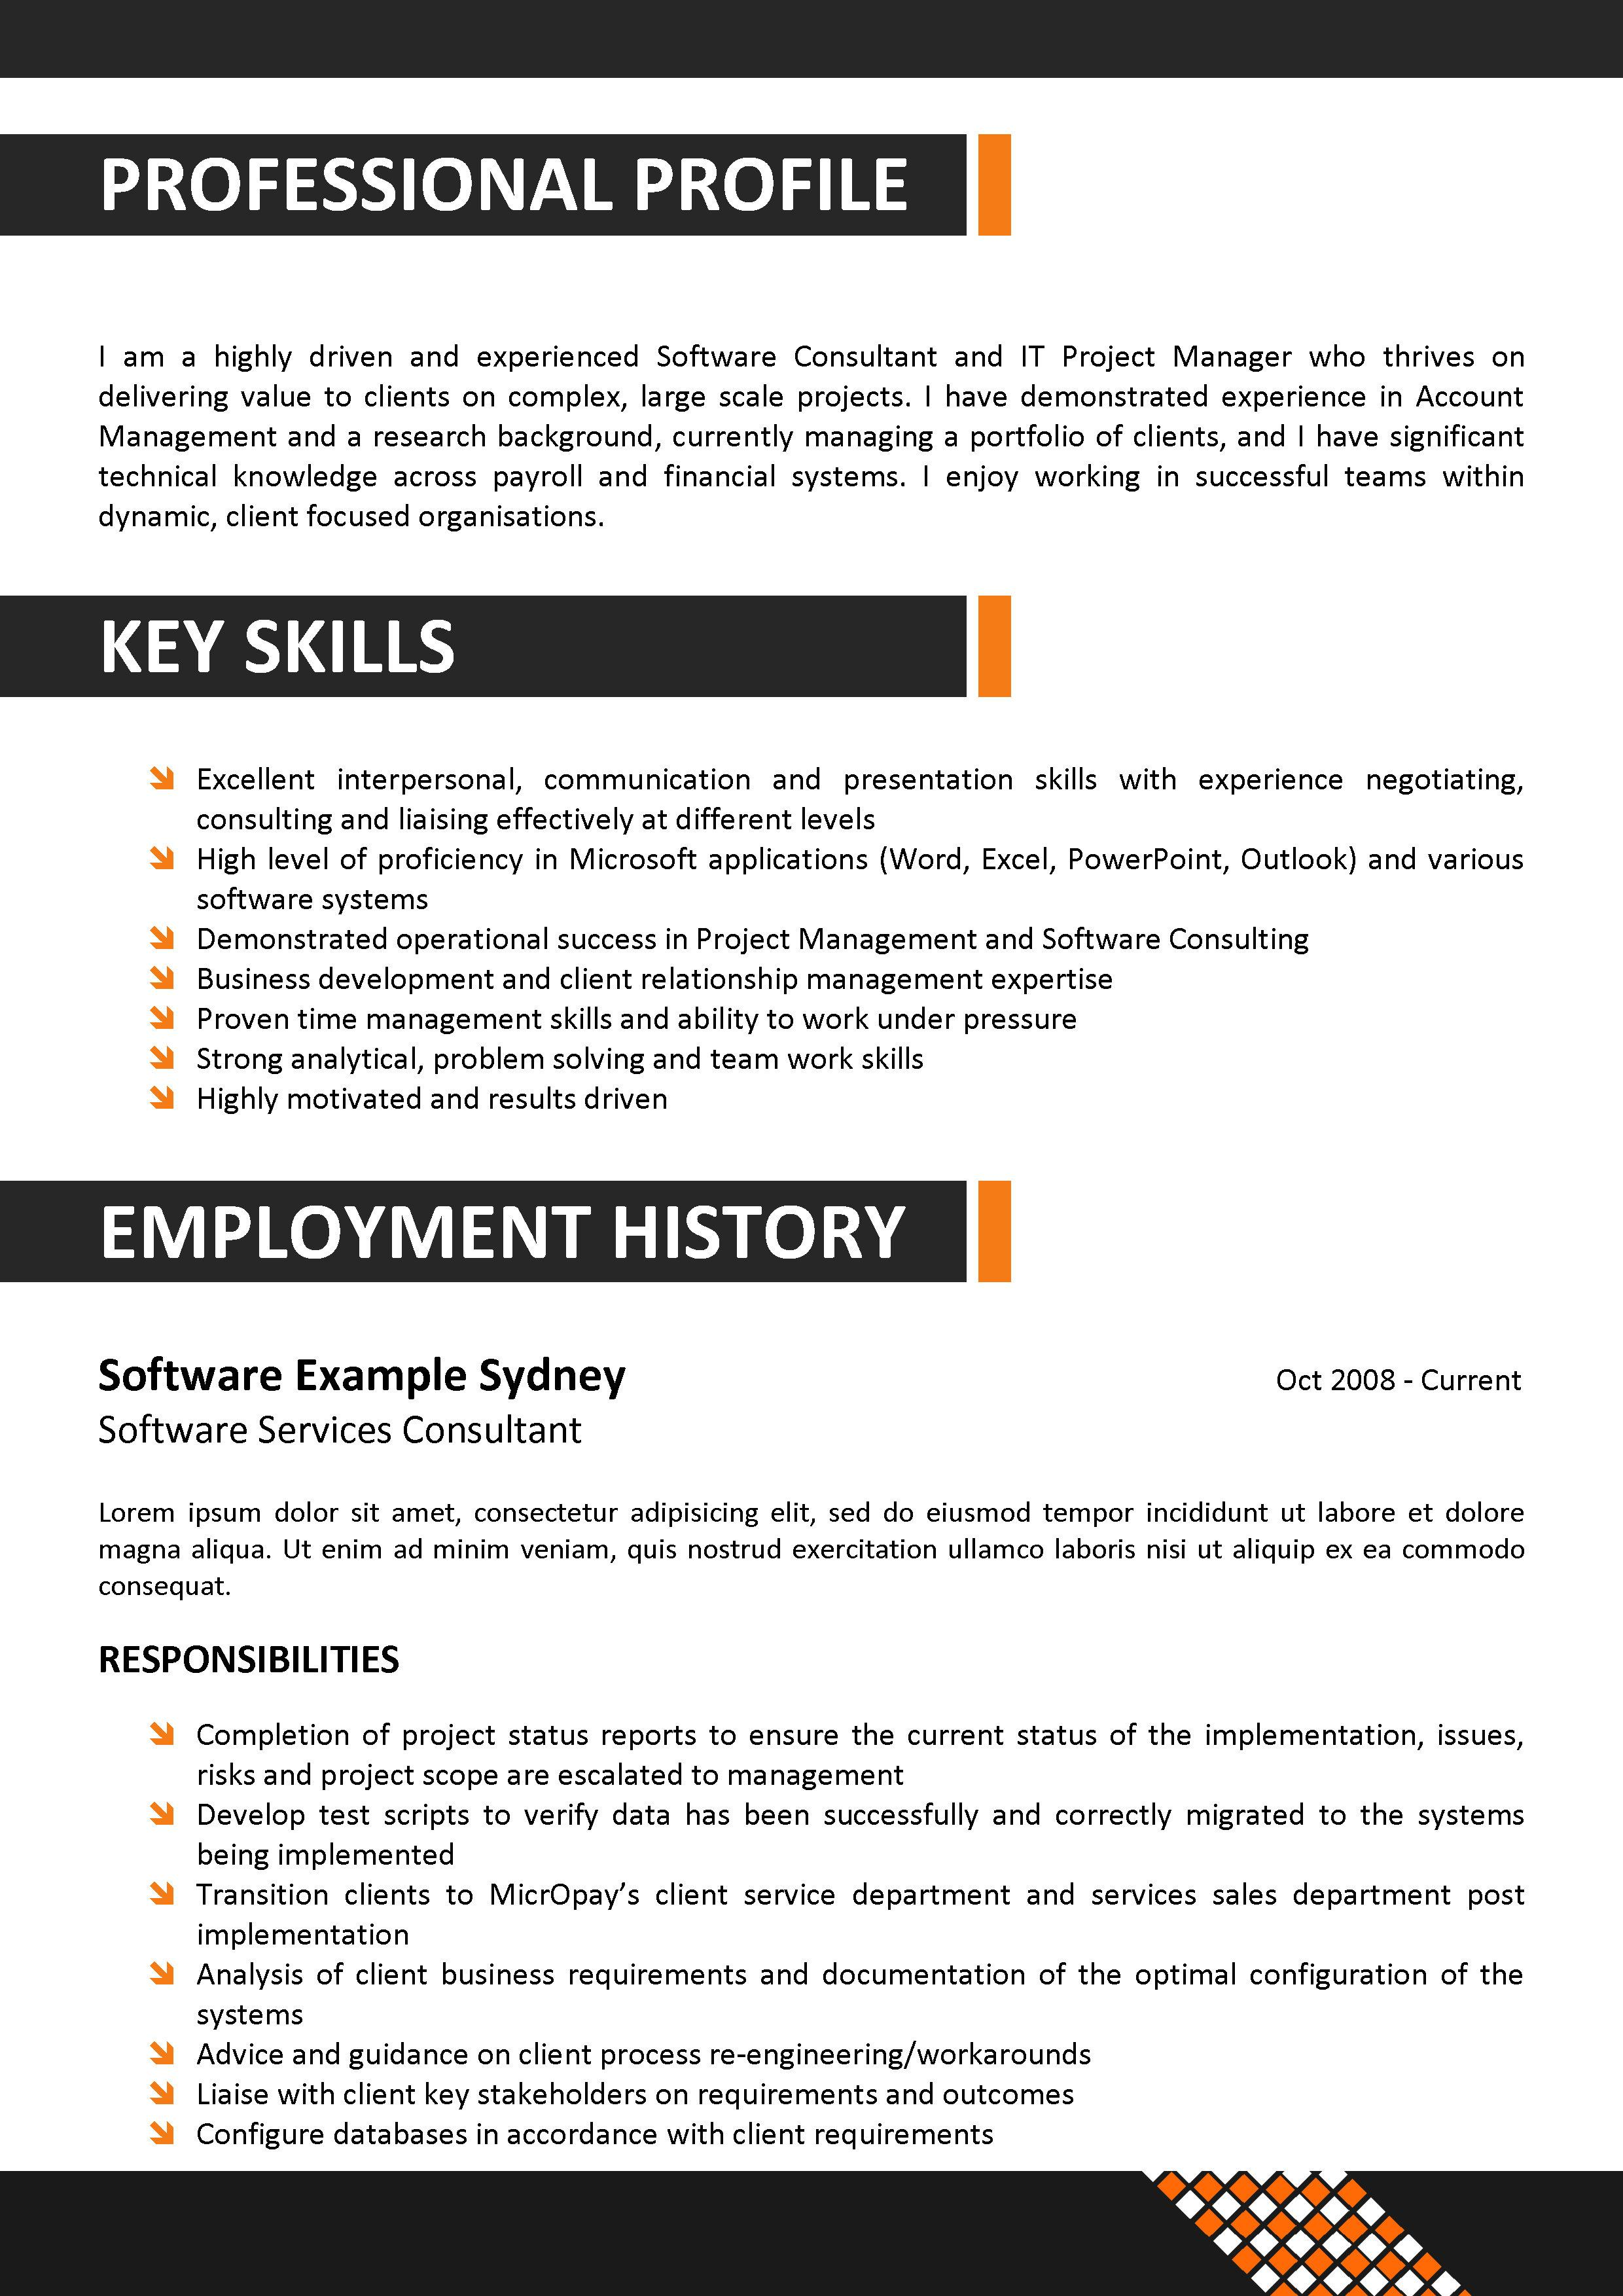 Free Mining Resume Templates 100 Results Career Faqs We Can Help With Professional Resume Writing Resume